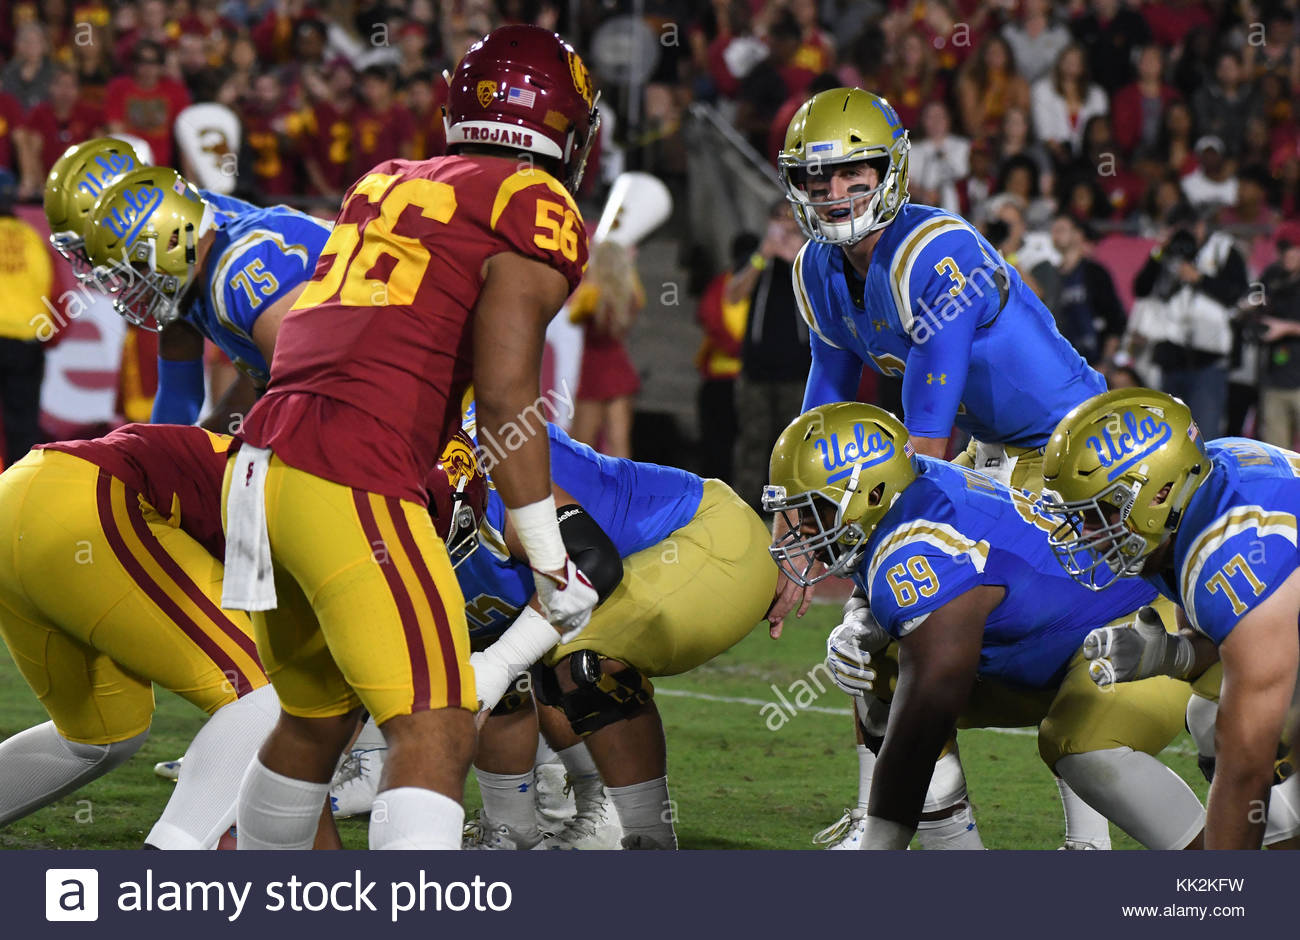 uk availability 2054d 536ce UCLA Bruins quarterback Josh Rosen (3) against the USC Trojans during the first  half of an NCAA college football game at the Los Angeles Memorial ...